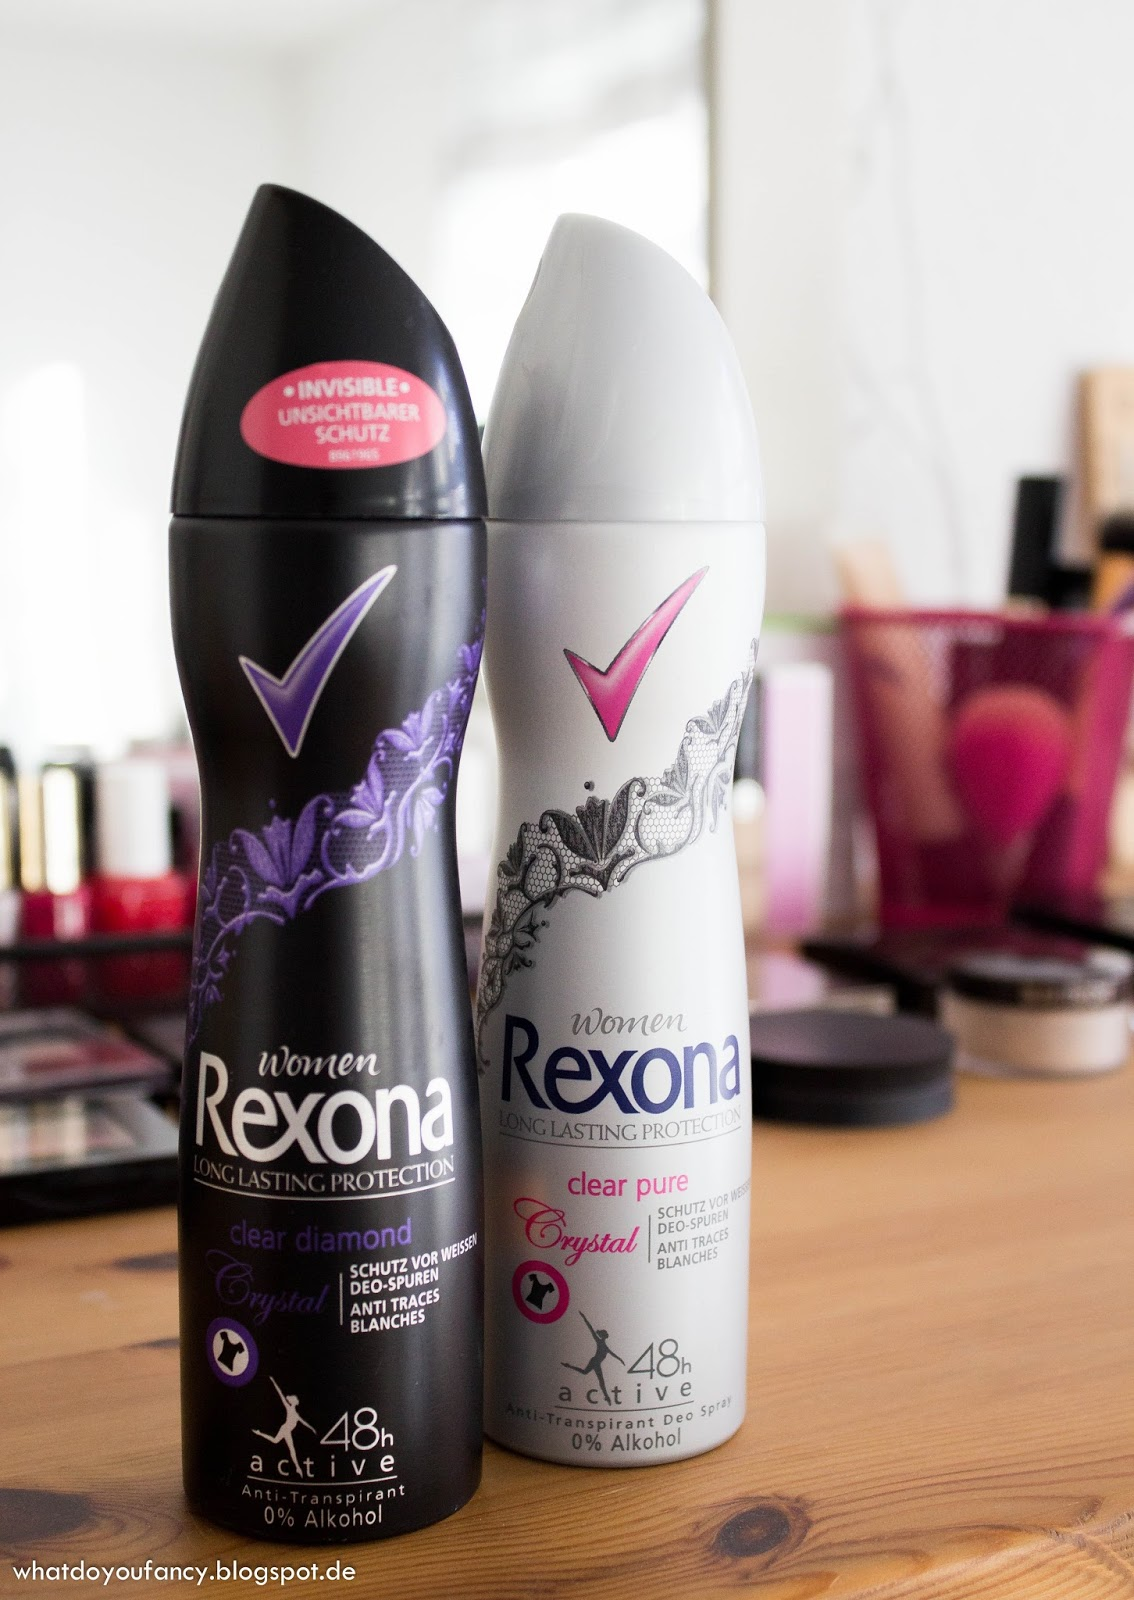 Rexona Clear Diamond Crystal